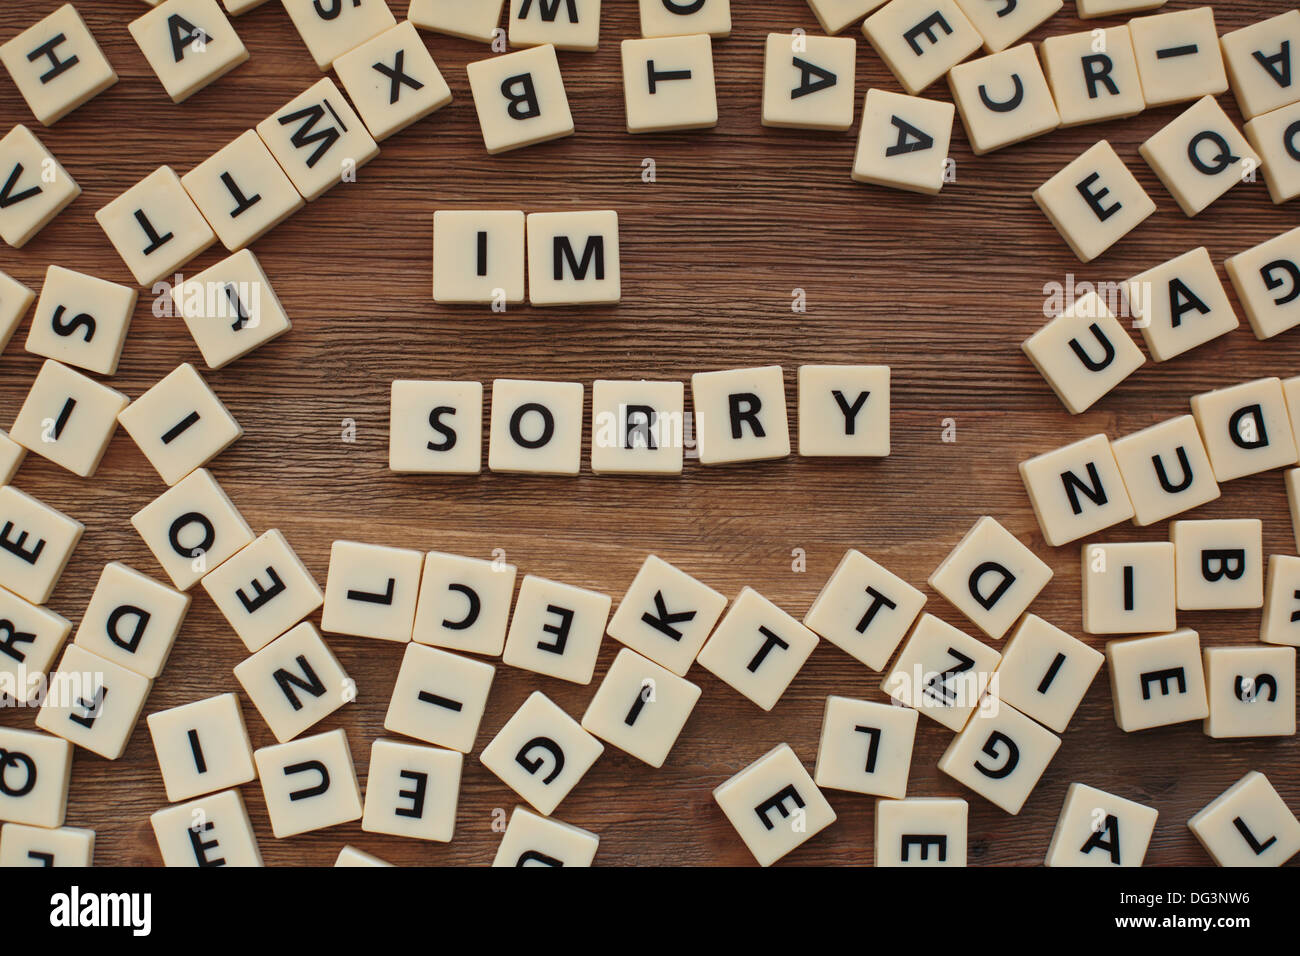 Plastic letters from a childrens' spelling game on a wooden table spell 'I'm Sorry' - Stock Image